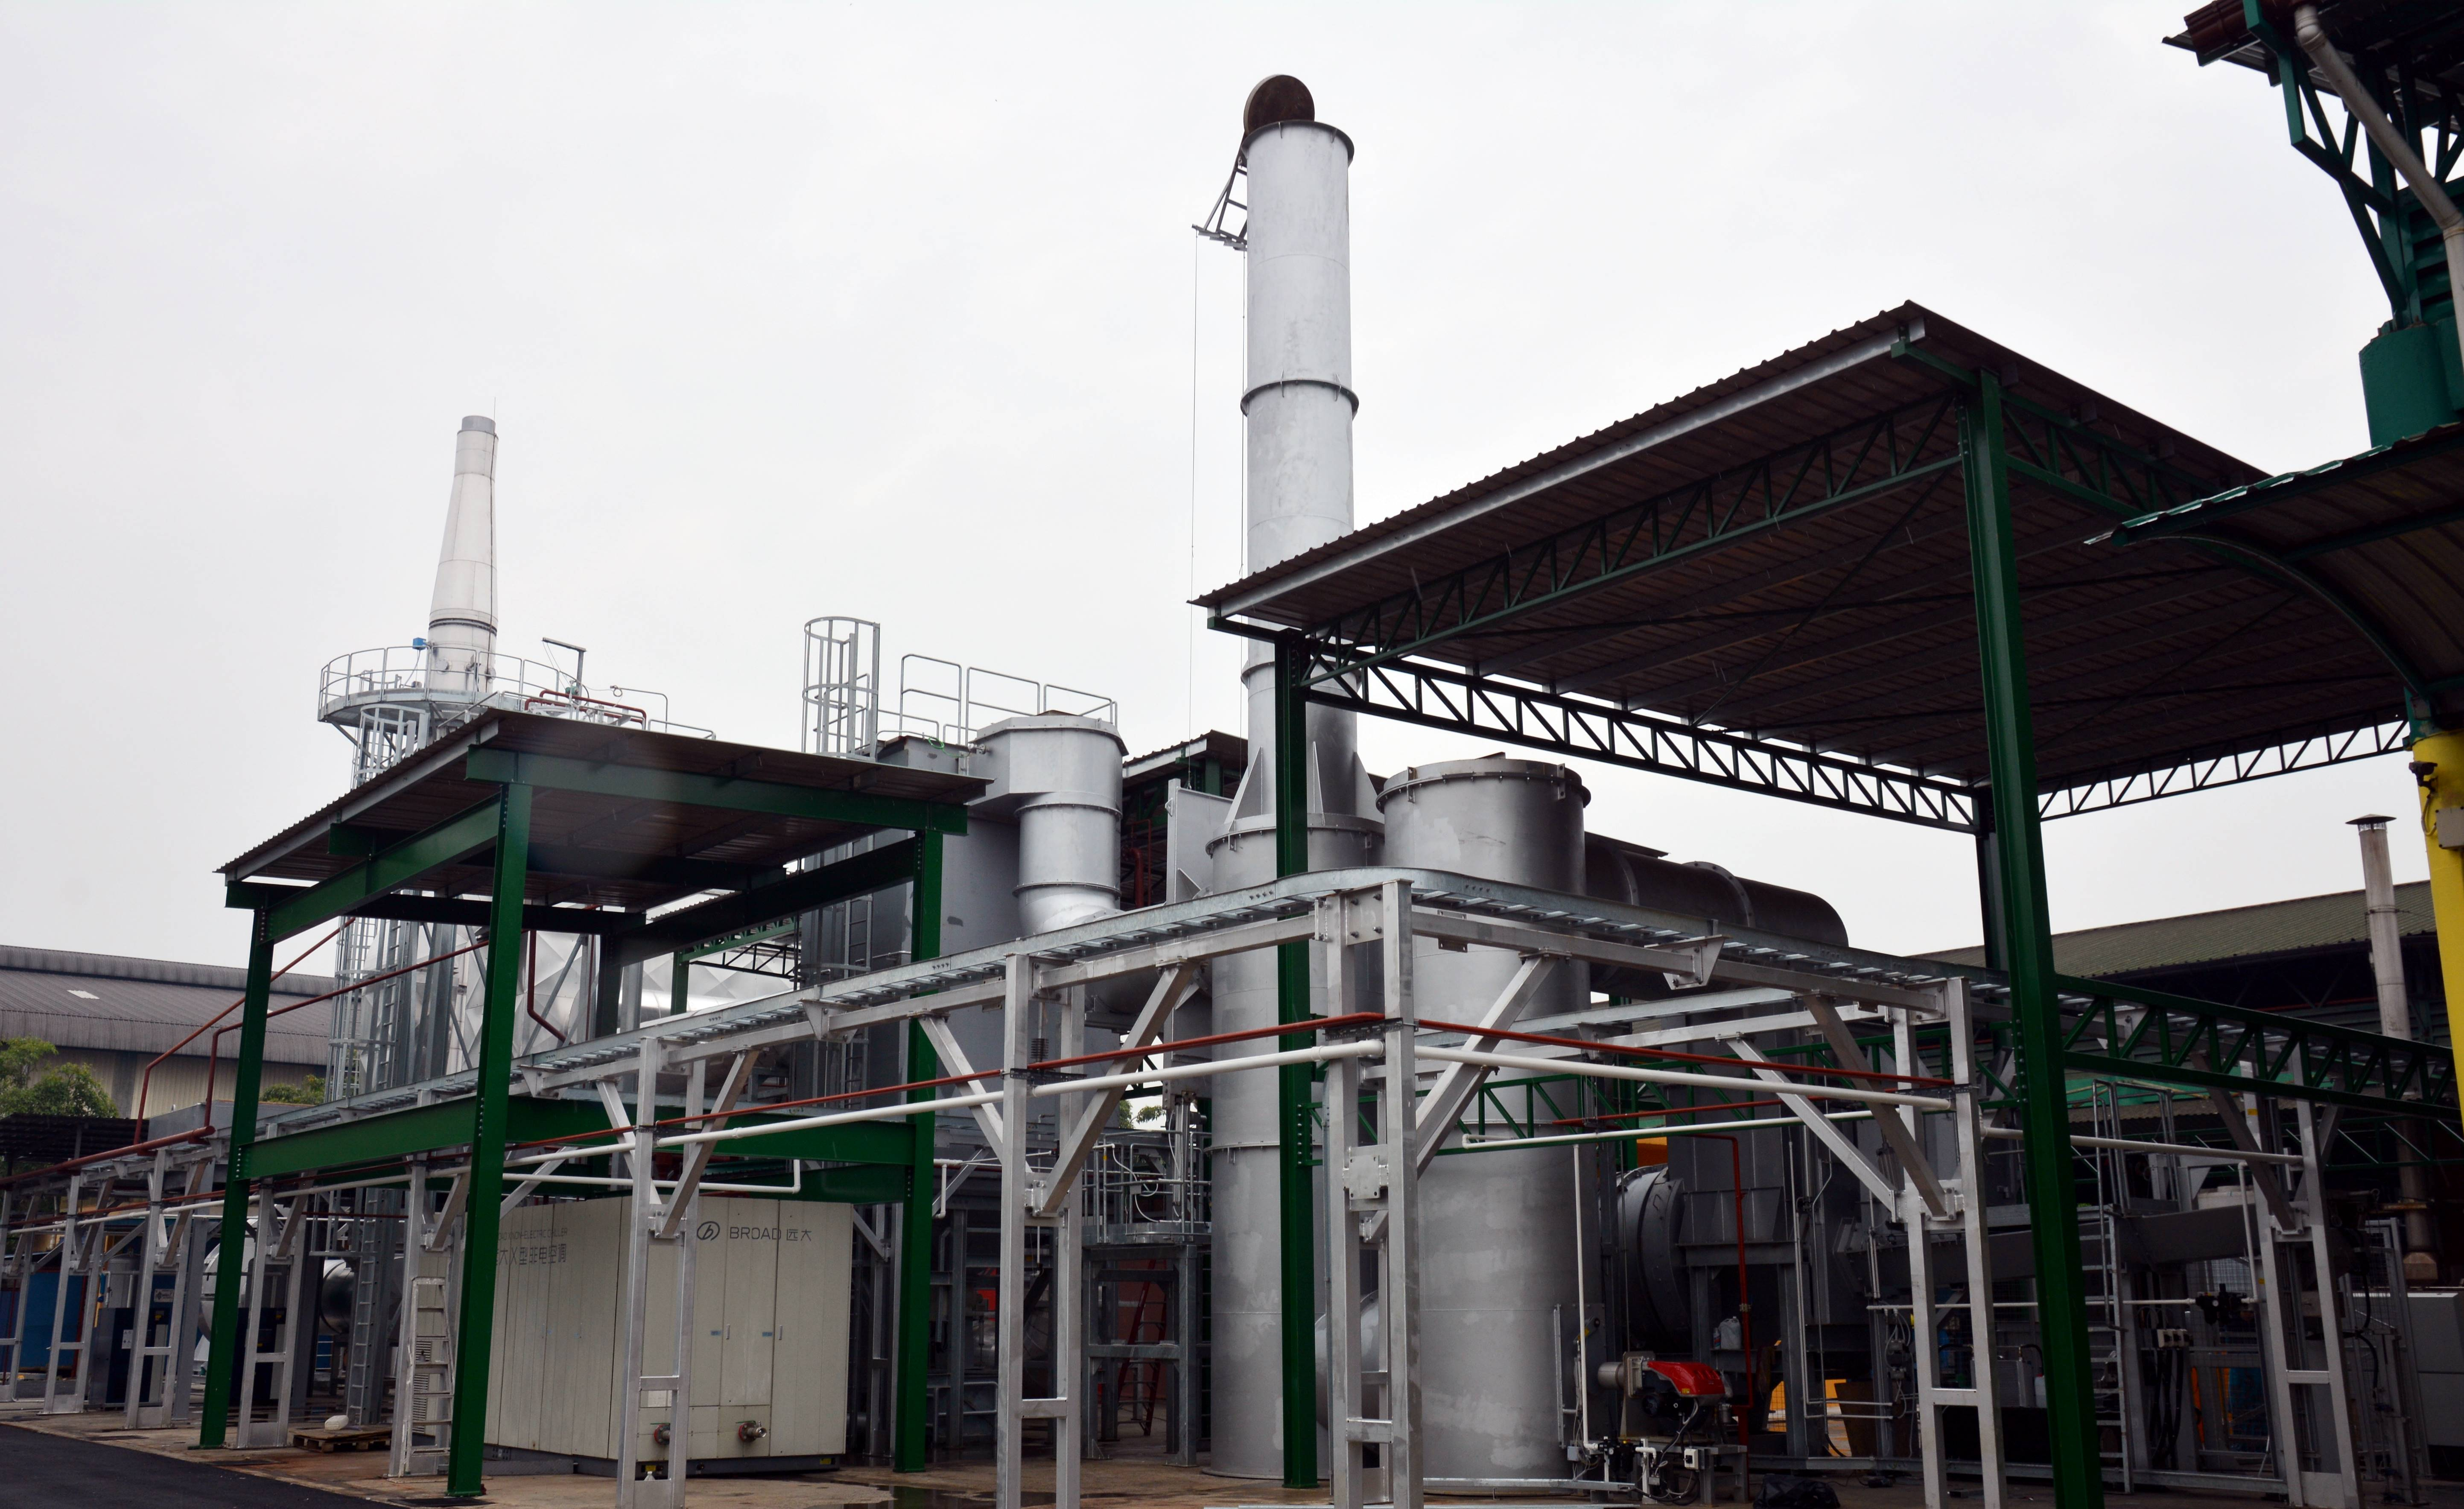 Combustible Incineration Plant at Clinwaste